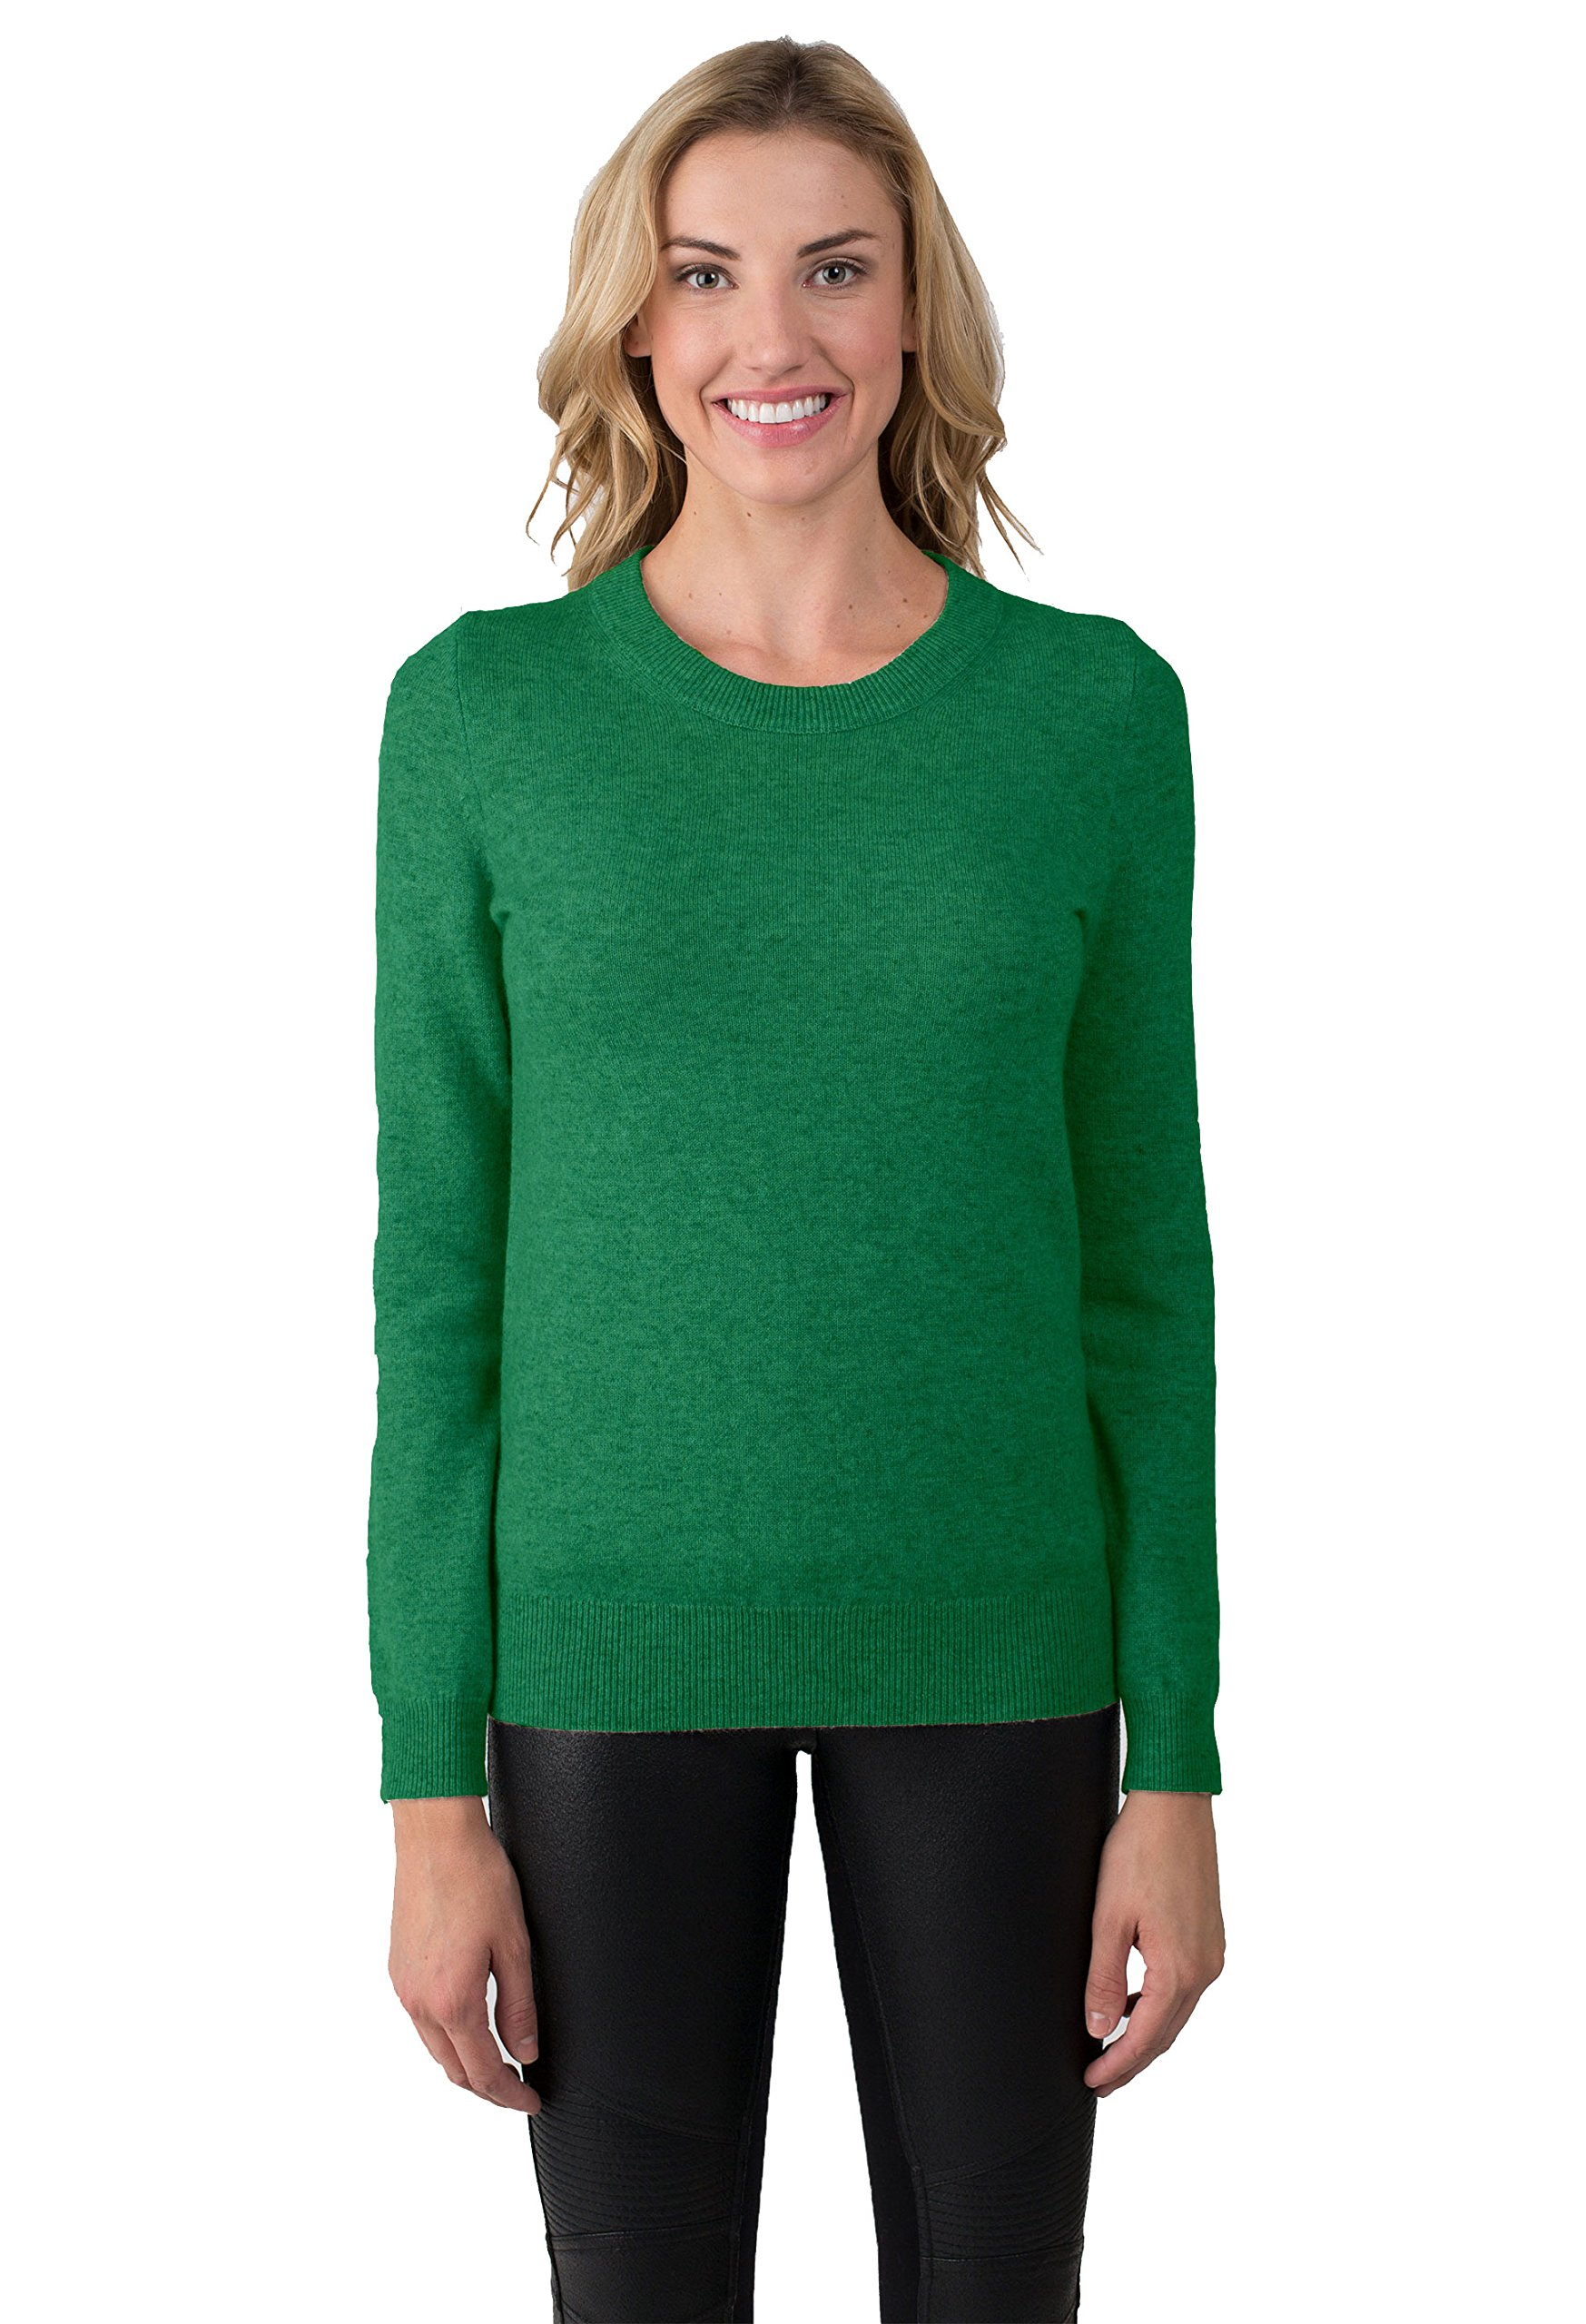 JENNIE LIU Women's 100% Pure Cashmere Long Sleeve Crew Neck Sweater (M, Forest?